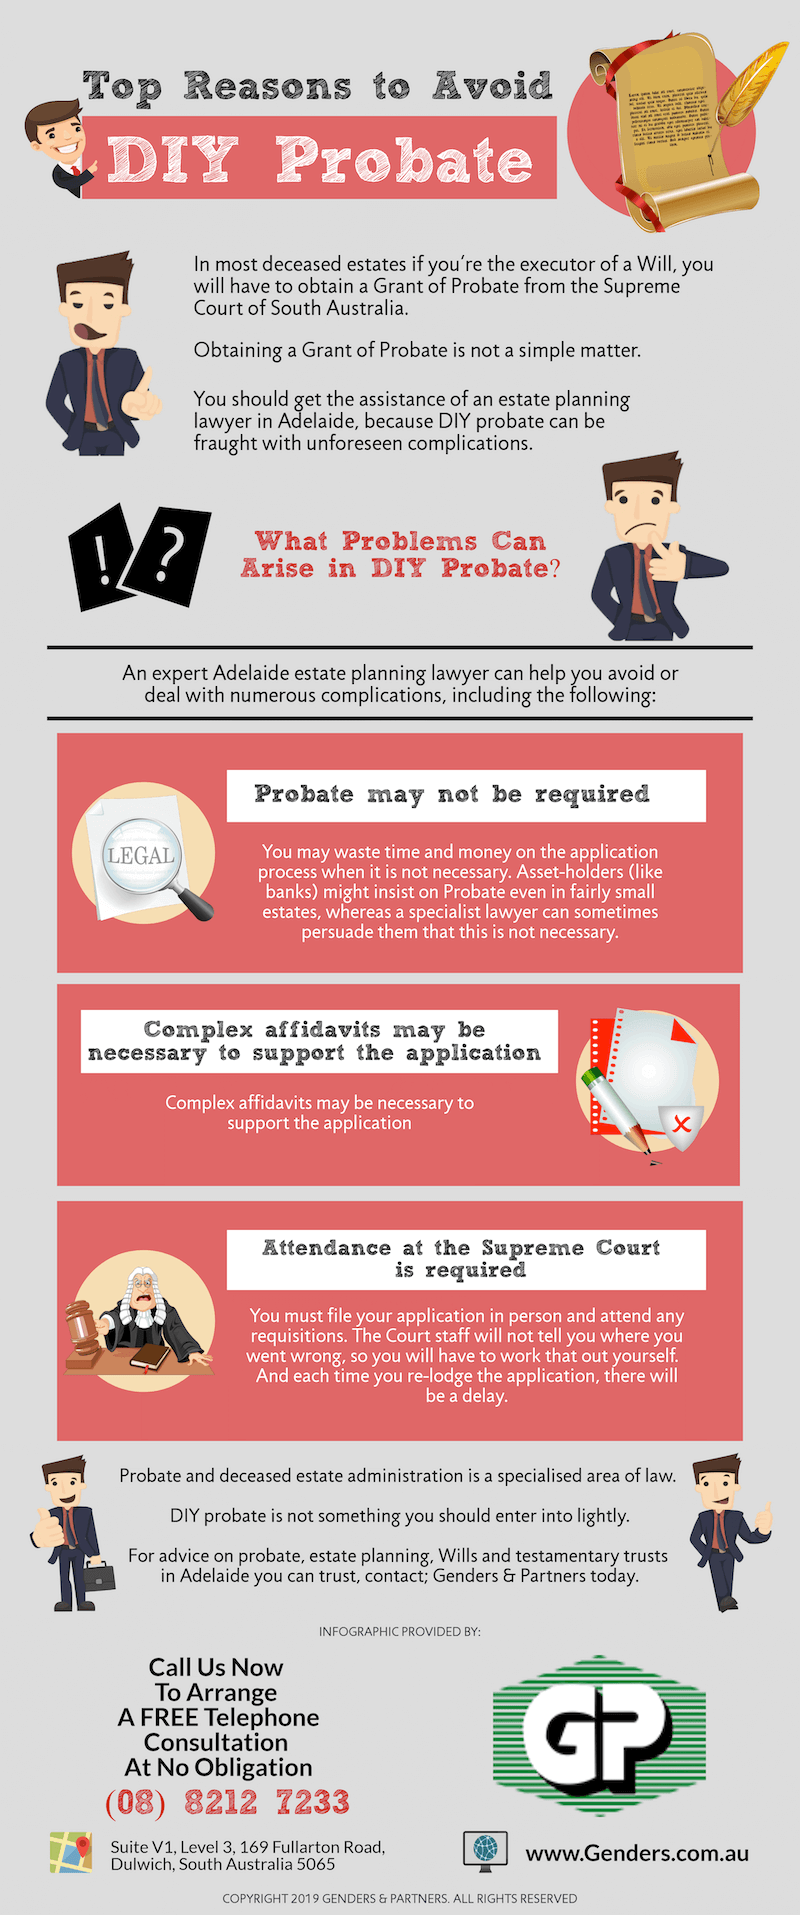 Top Reasons to Avoid DIY Probate